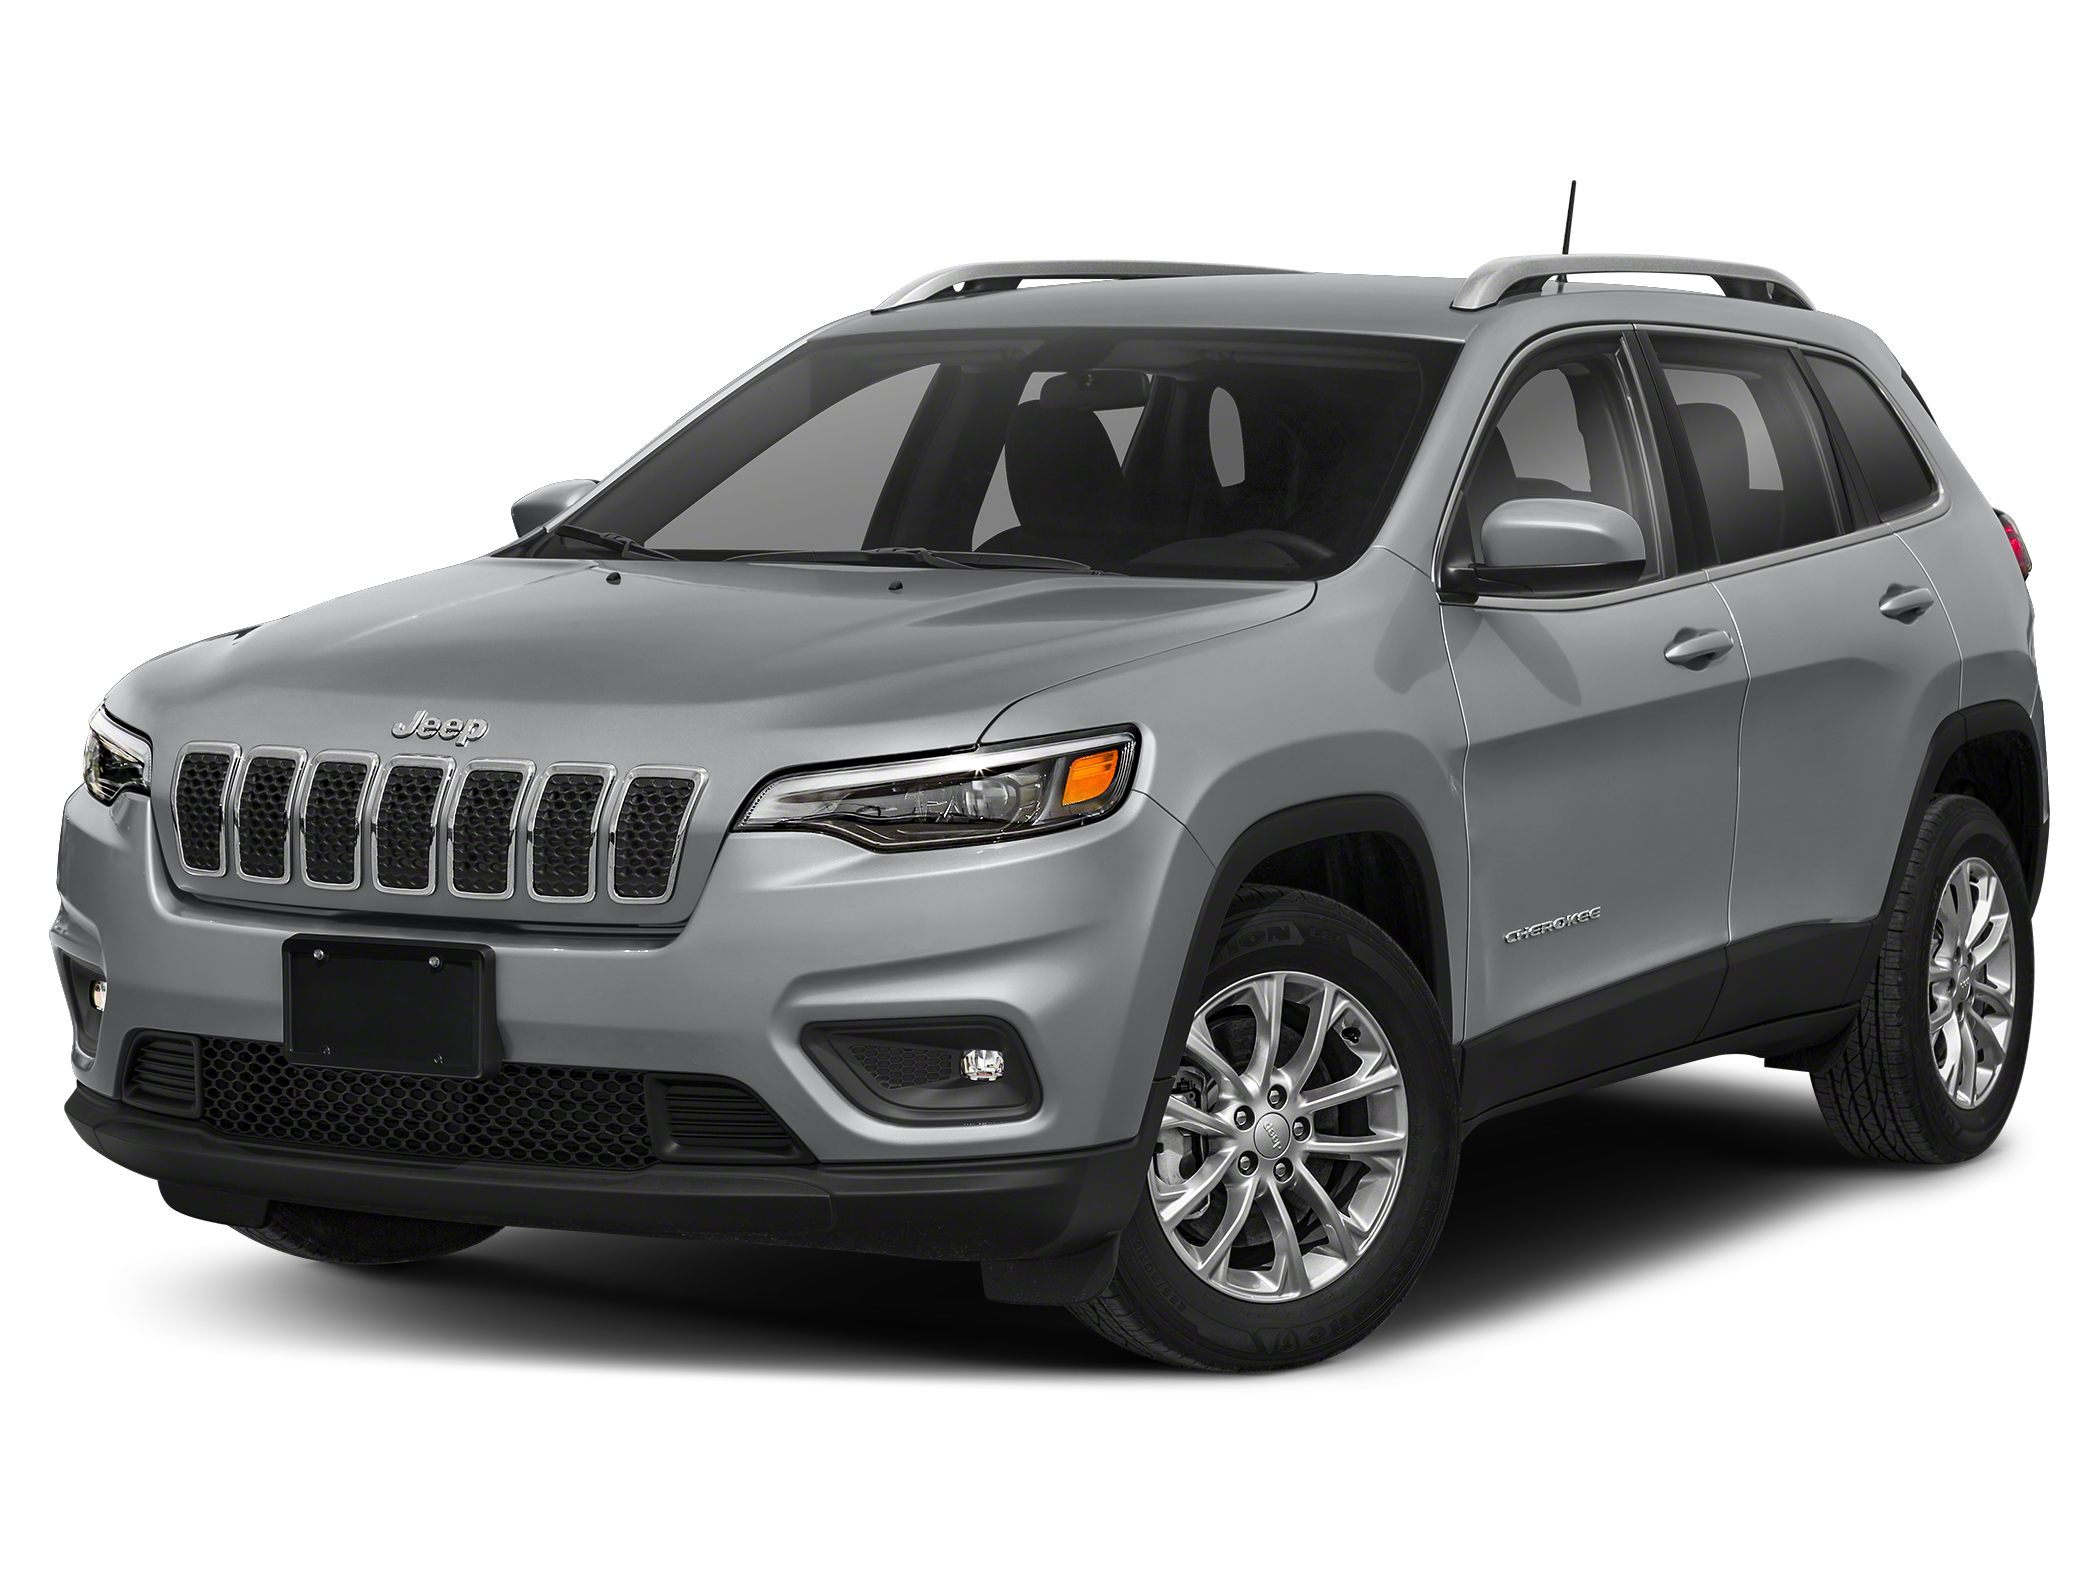 used 2019 Jeep Cherokee car, priced at $29,998